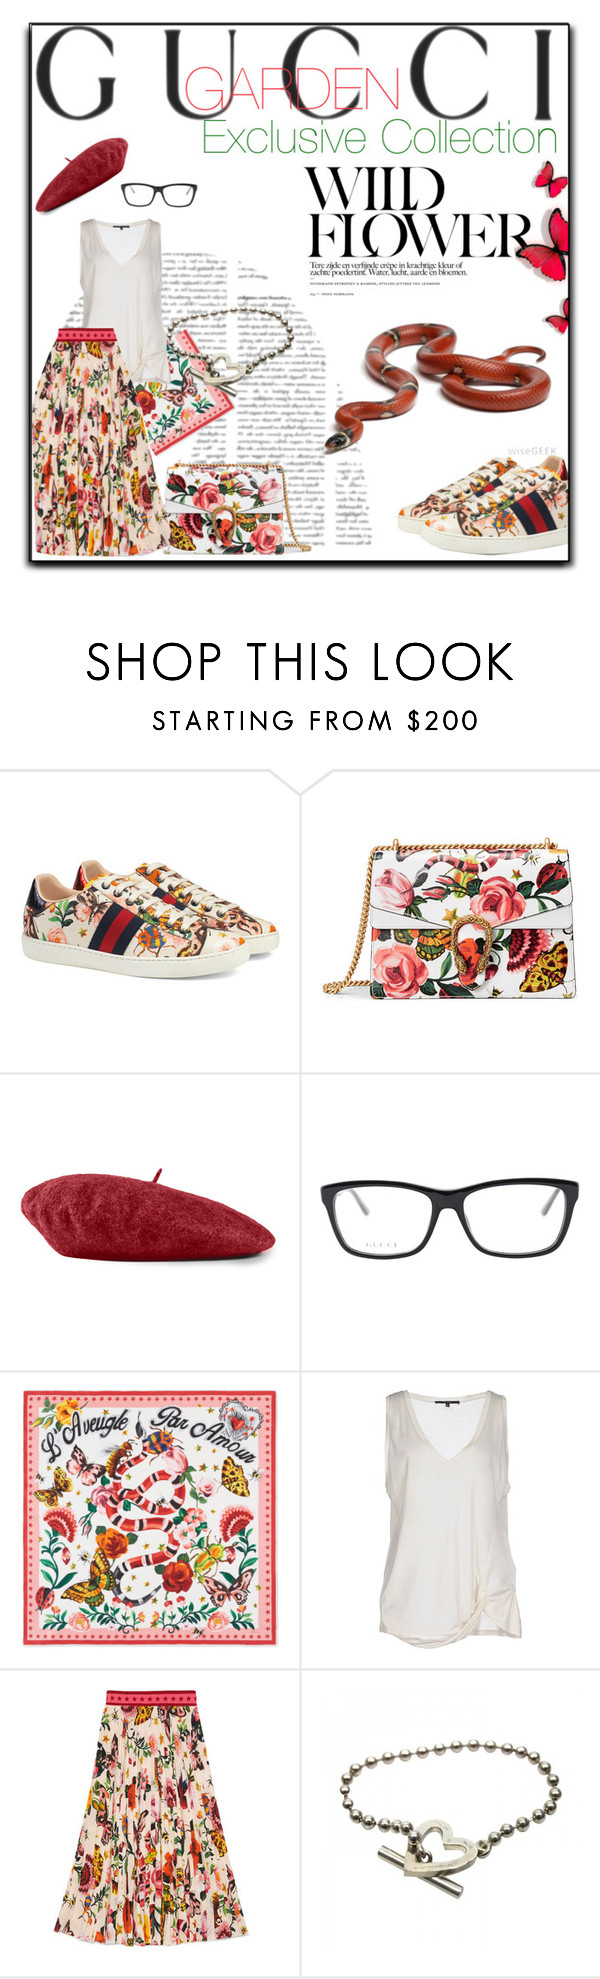 """""""Presenting the Gucci Garden Exclusive Collection: Contest Entry"""" by iv-gromova ❤ liked on Polyvore featuring Gucci, Traits and gucci"""